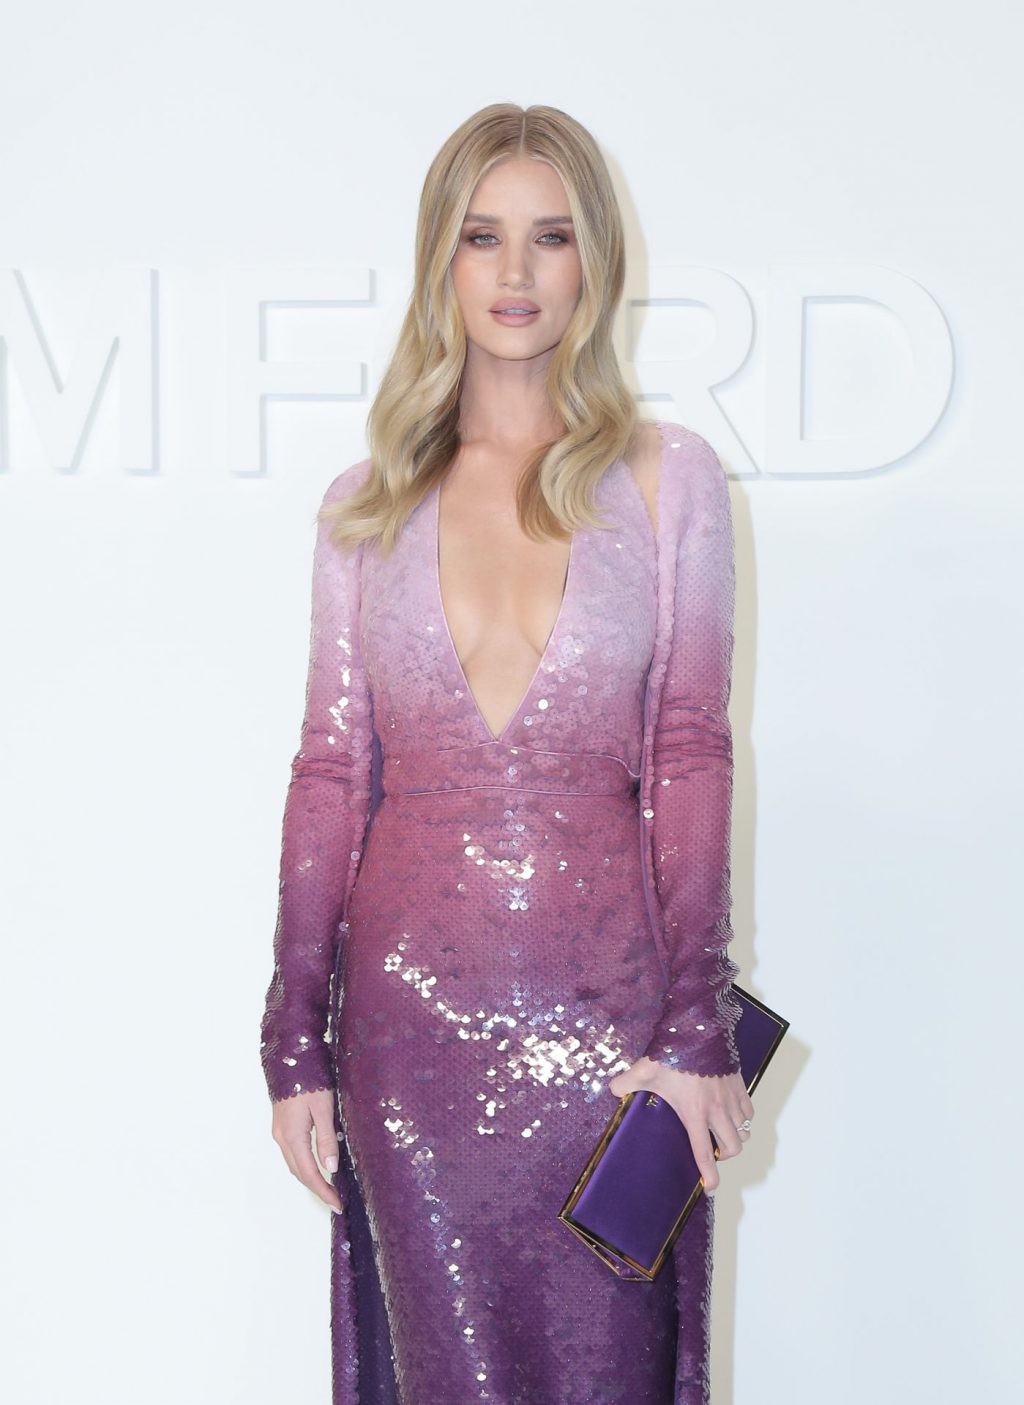 Rosie Huntington Whiteley Sexy The Fappening Blog 59 1024x1405 - Rosie Huntington-Whiteley Shows Her Cleavage at the Tom Ford Fashion Show (115 Photos)